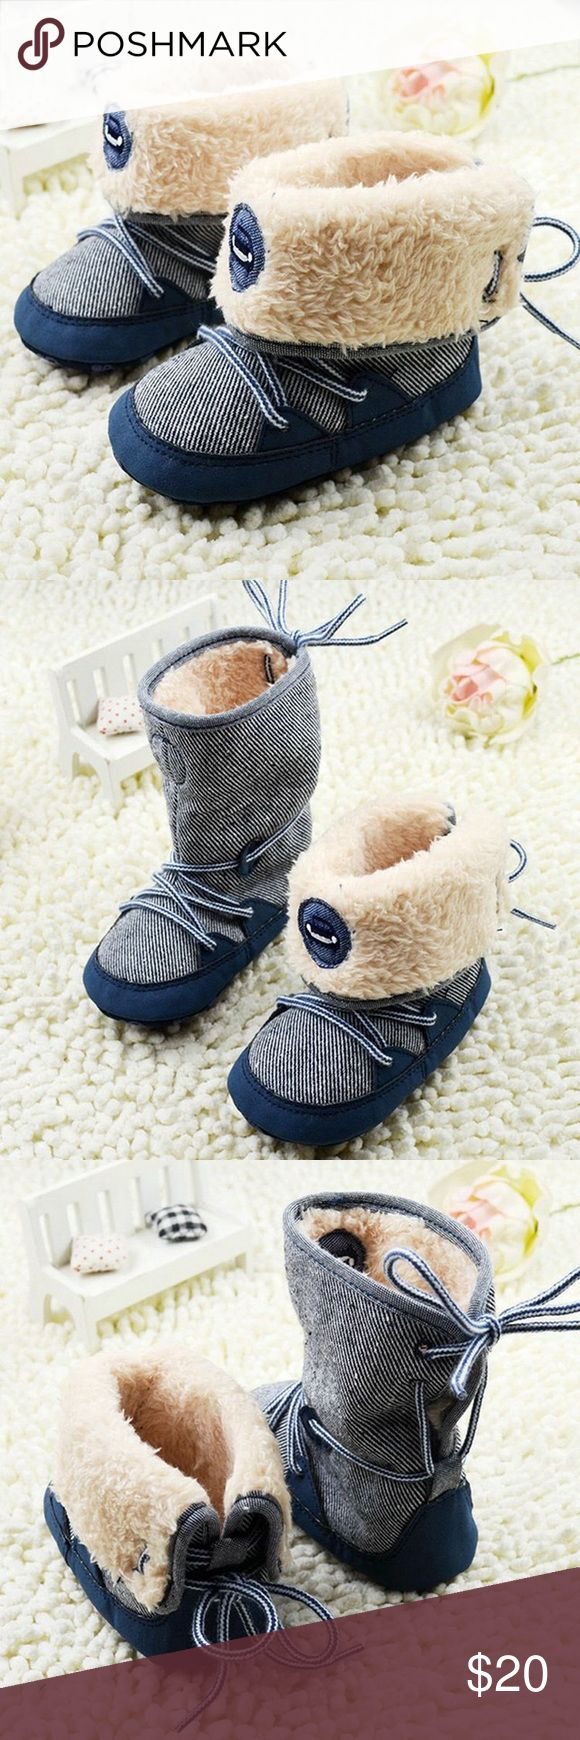 Toddler Baby Snow Boots Winter Warm Shoes Size Newborn to 18 Months Baby Girls Boys Winter Boots Faux Fur Lined Shoes Anti-slip Prewalker Shoes 100% Brand New & High Quality Material: Cotton Blend +Faux Fur Features & Fastening:Laces/Lace up Style:Baby Boots Color:Navy Size: Fit For 0-18 Months Baby.                               Ab147 - 1 Corinthians 13:13  Shoes Baby & Walker